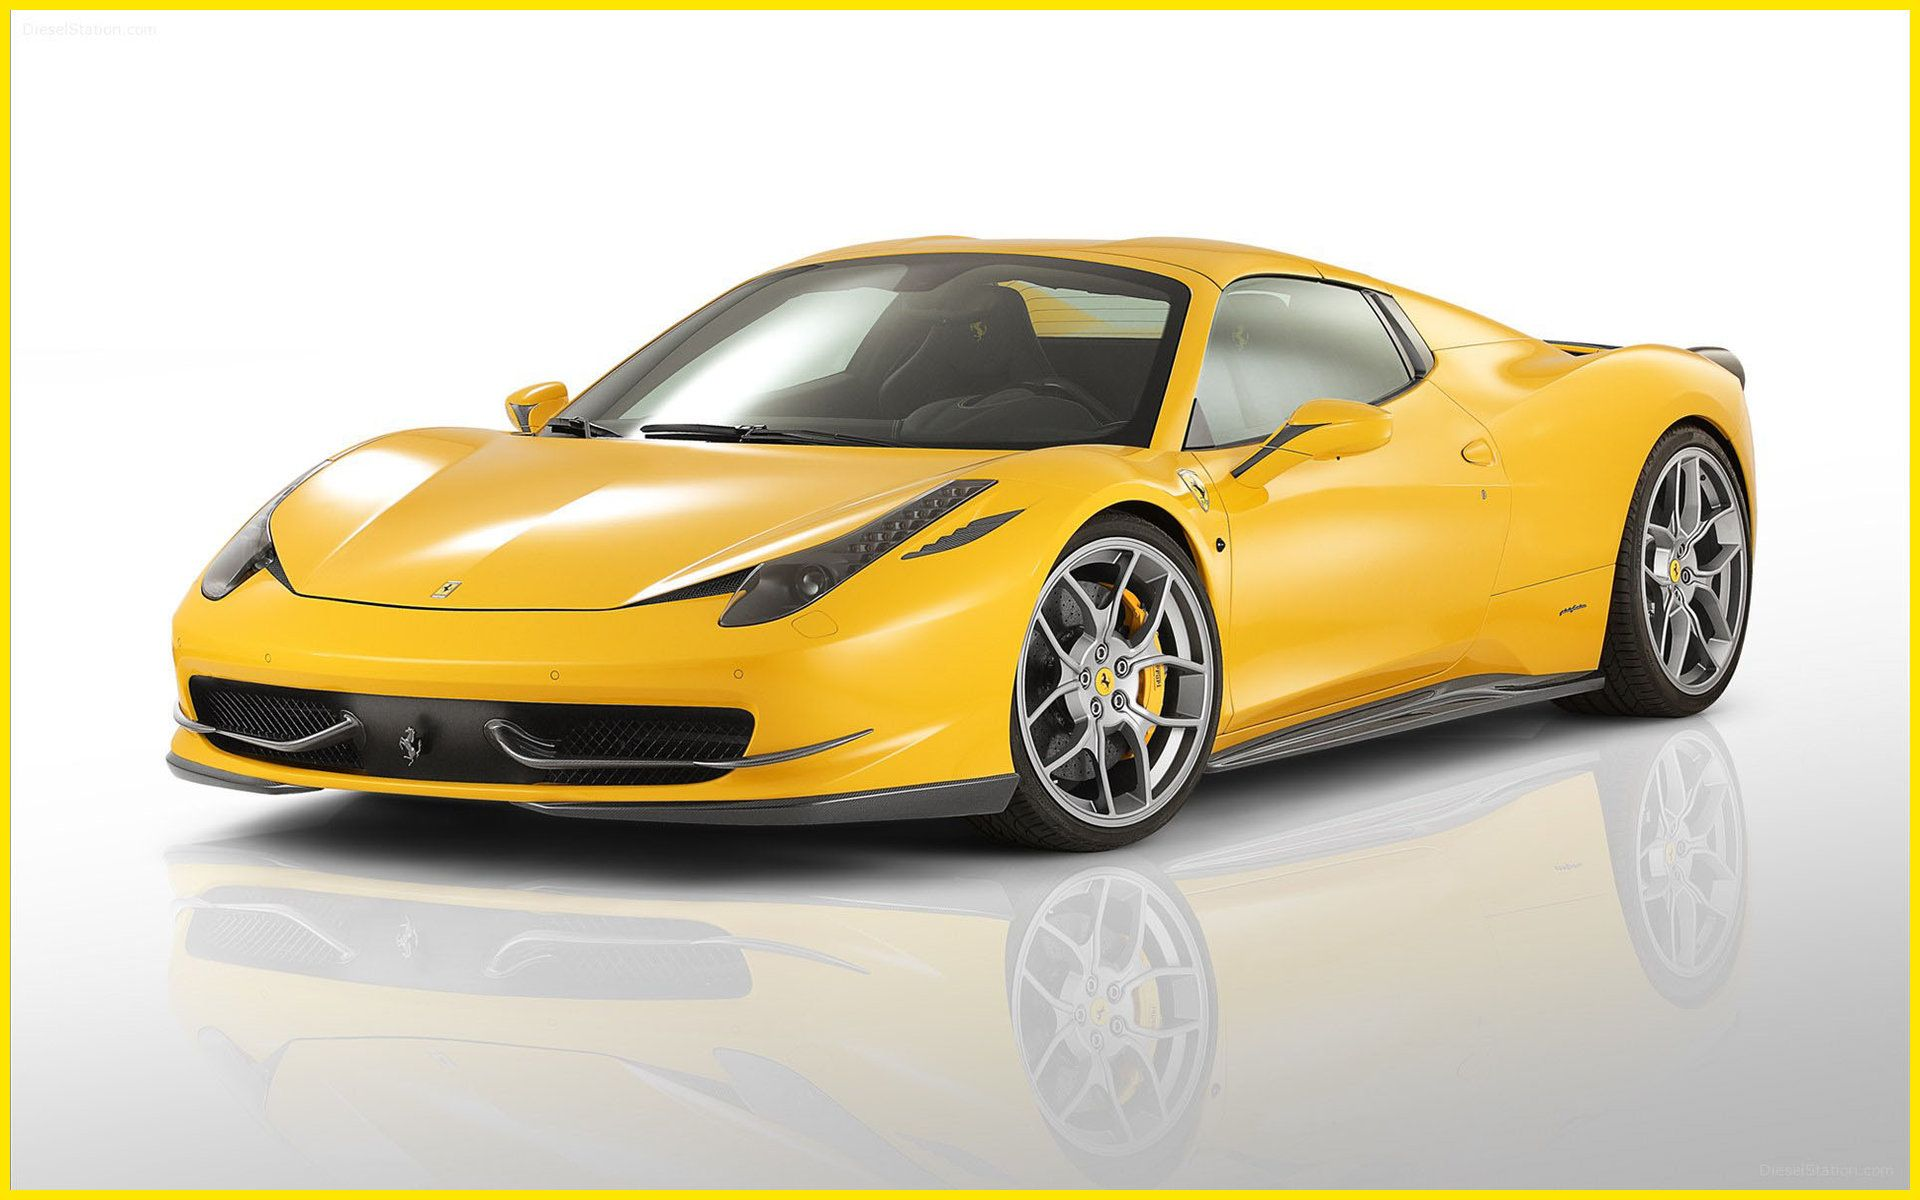 Yellow Ferrari 458 Spider Wallpaper Widescreen